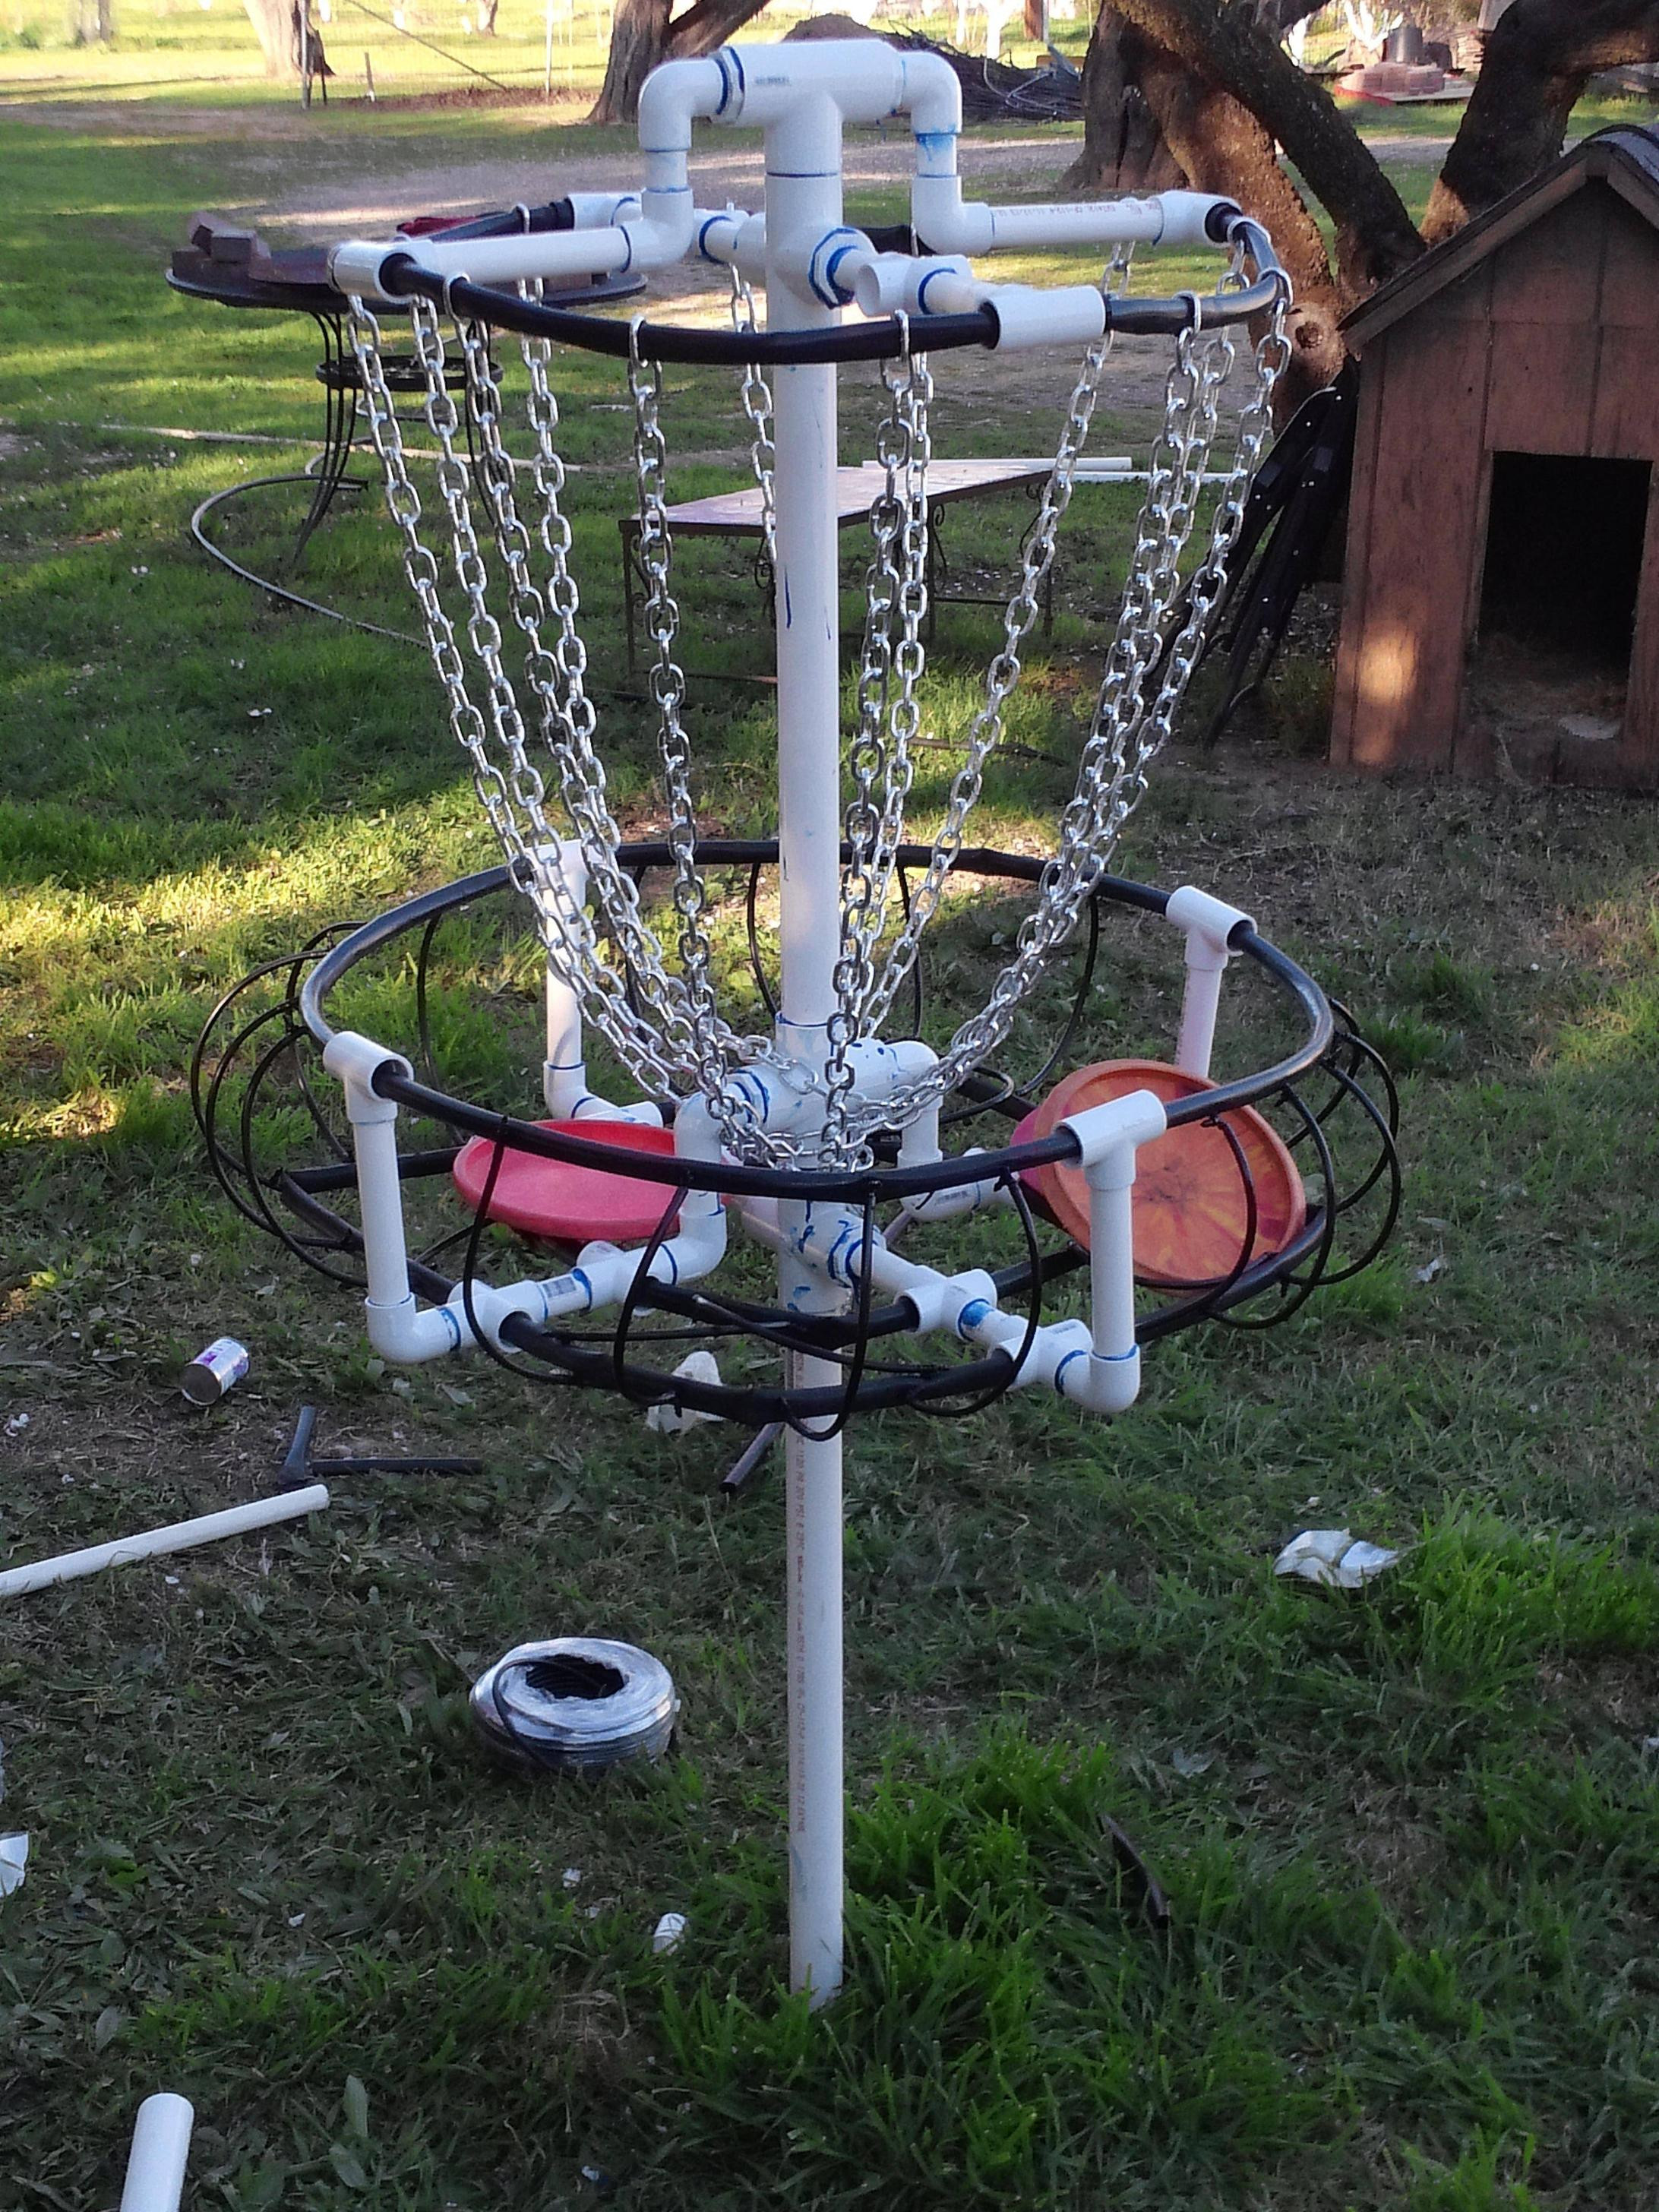 Best ideas about DIY Disc Golf Basket . Save or Pin Homemade PVC basket discgolf Now.